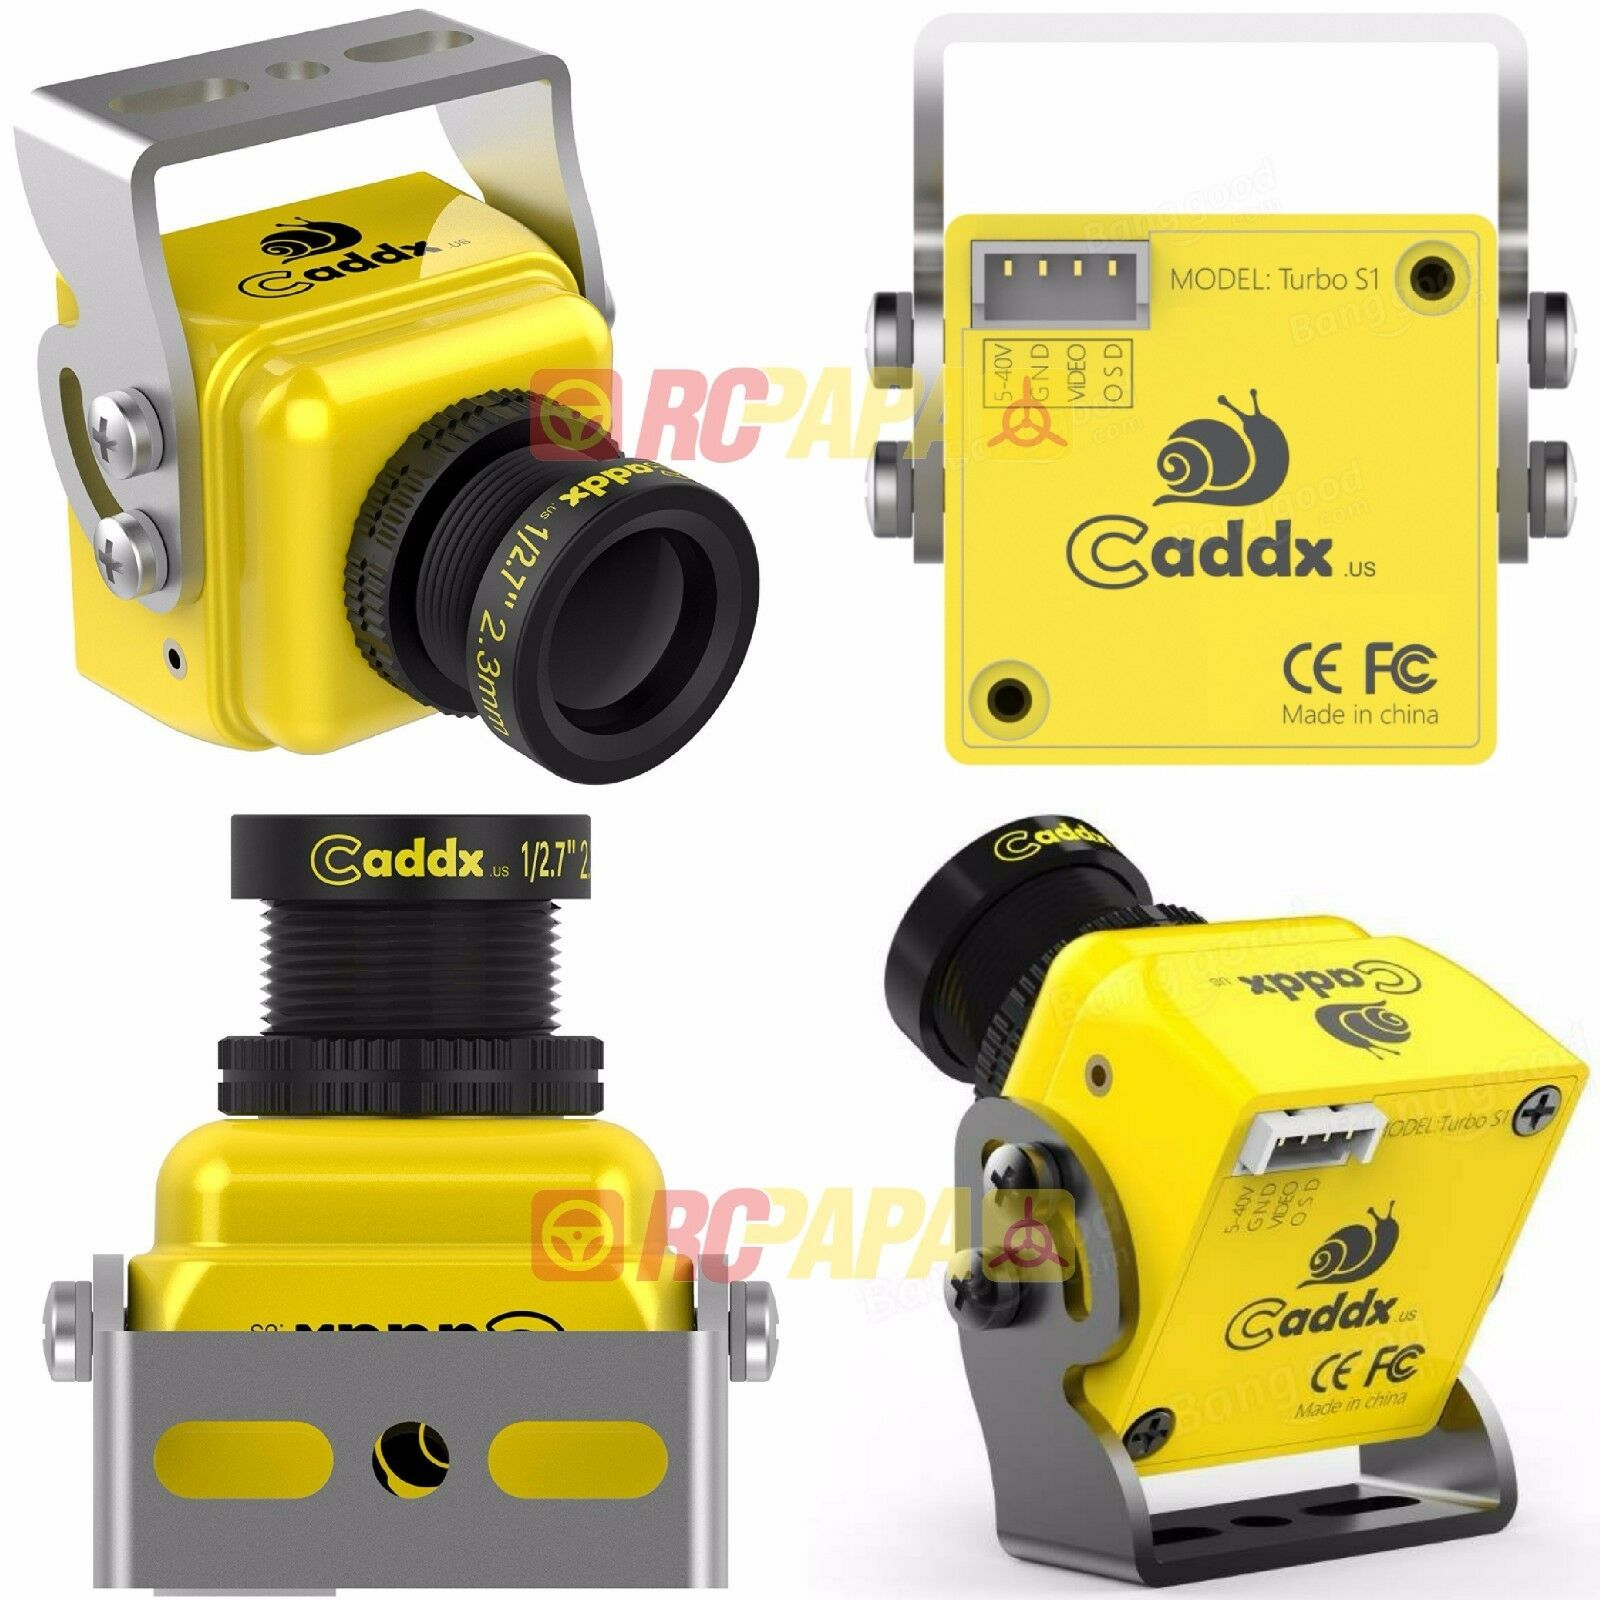 Caddx Turbo S1 1 3 CCD 600TVL FPV Camera for for for Quad Free-Style Race (Yellow PAL) 940921